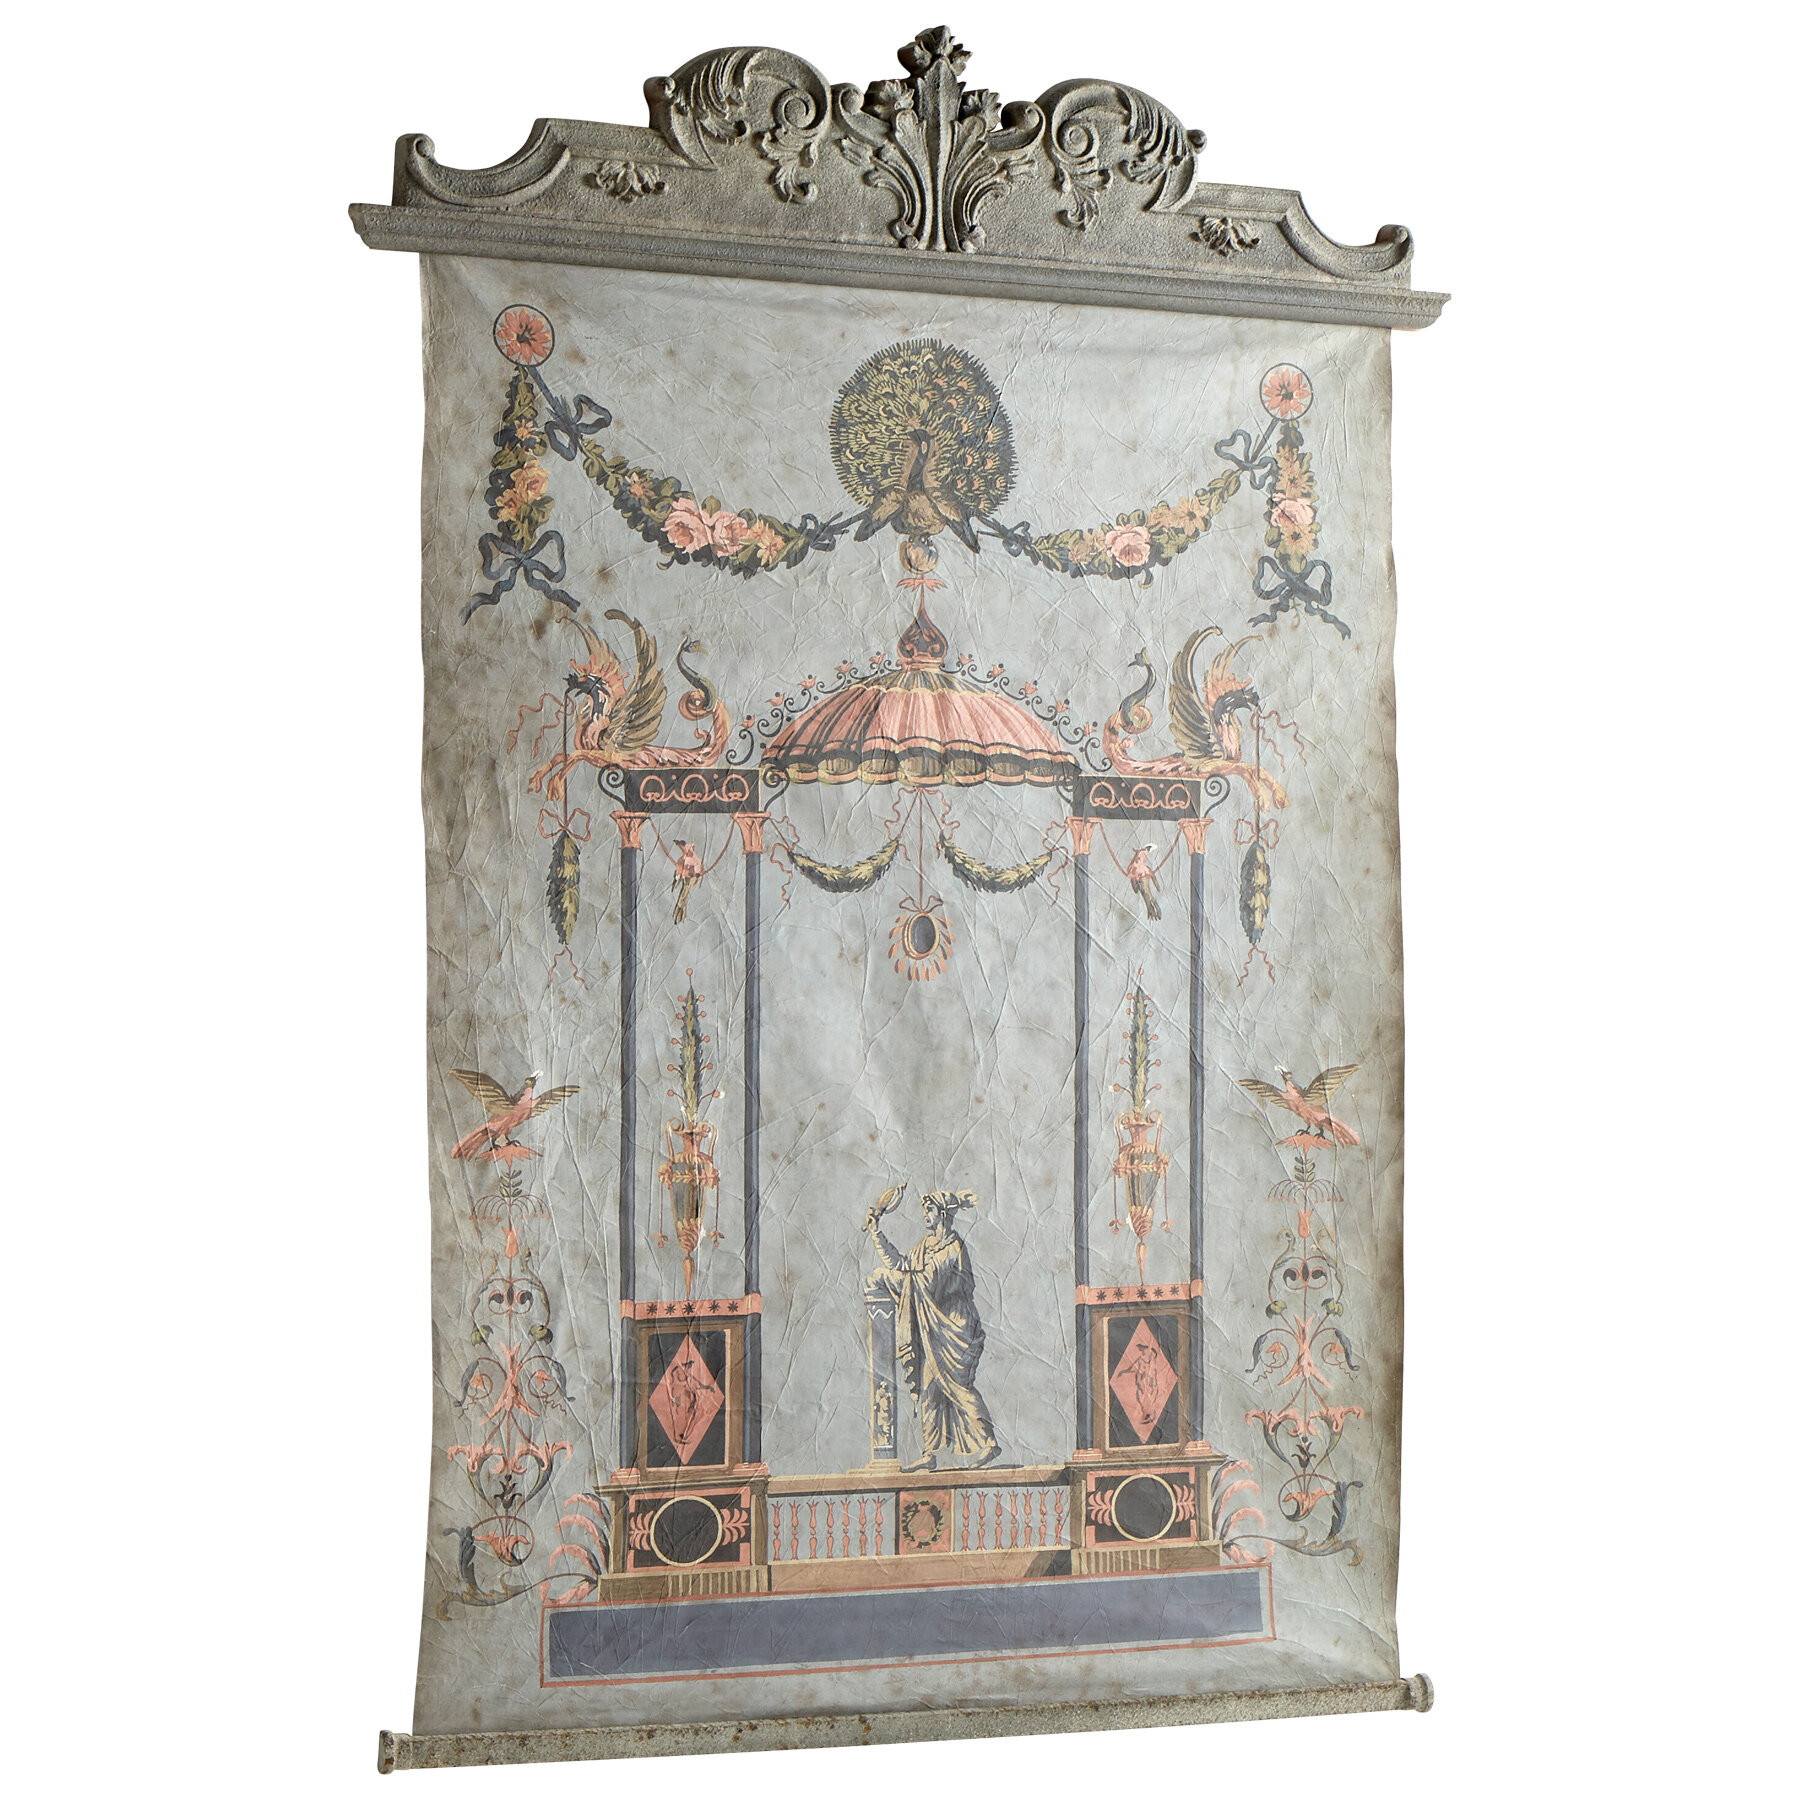 Blended Fabric Ethereal Days Chinoiserie Wall Hanging With Rod Pertaining To Most Up To Date Blended Fabric Wall Hangings (View 13 of 20)